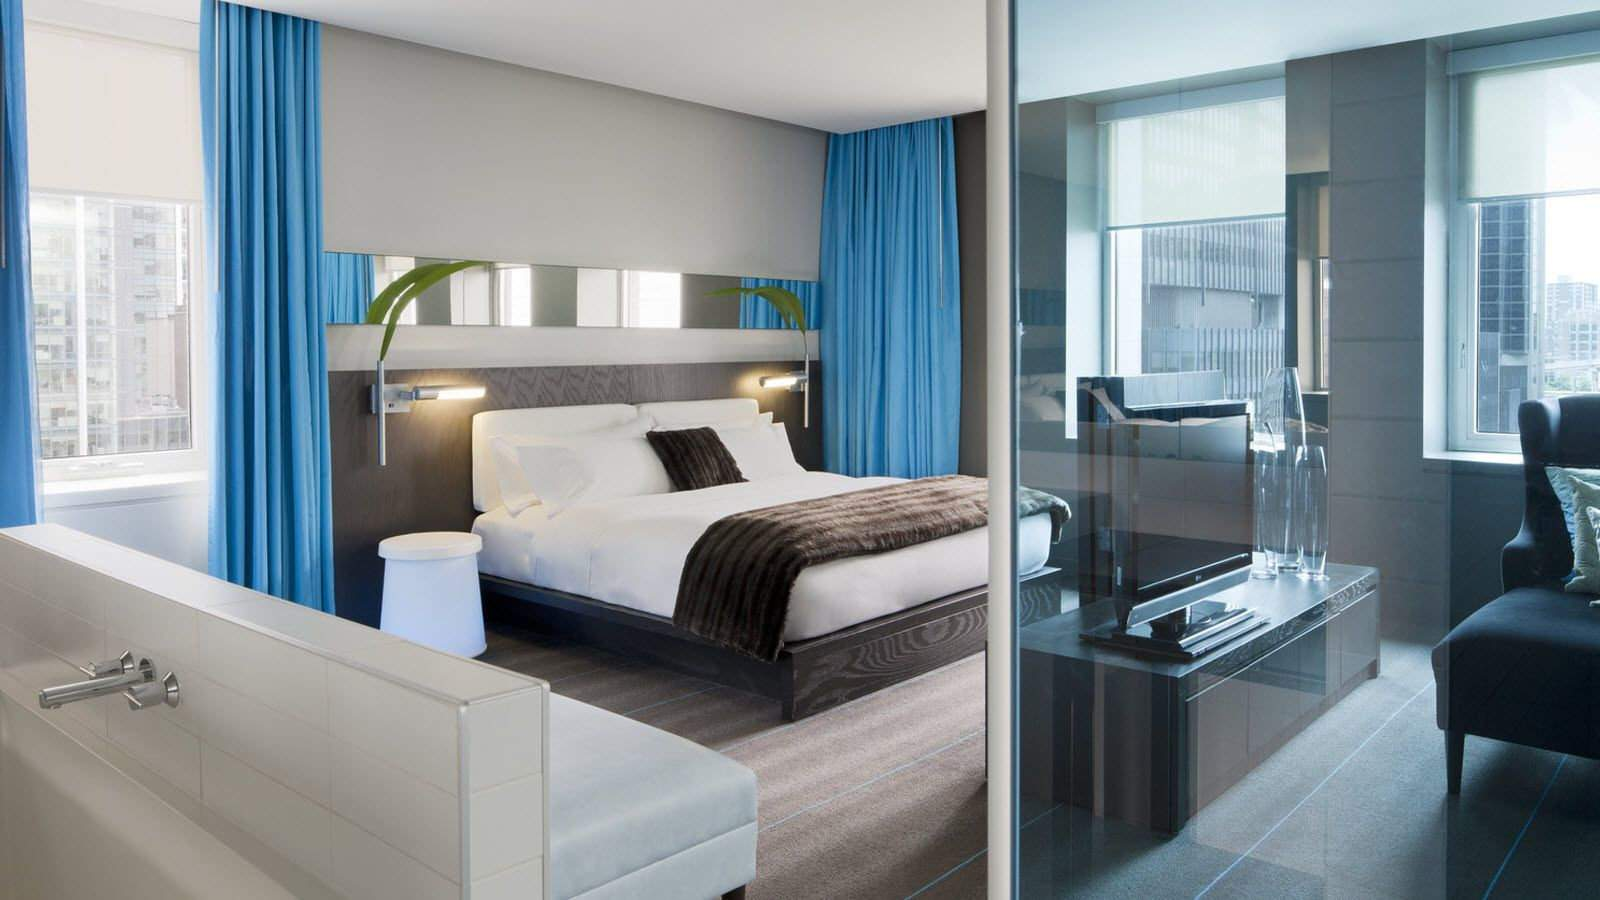 The W Hotel in Montreal is both pet friendly and gay friendly, as well as being very luxurious!